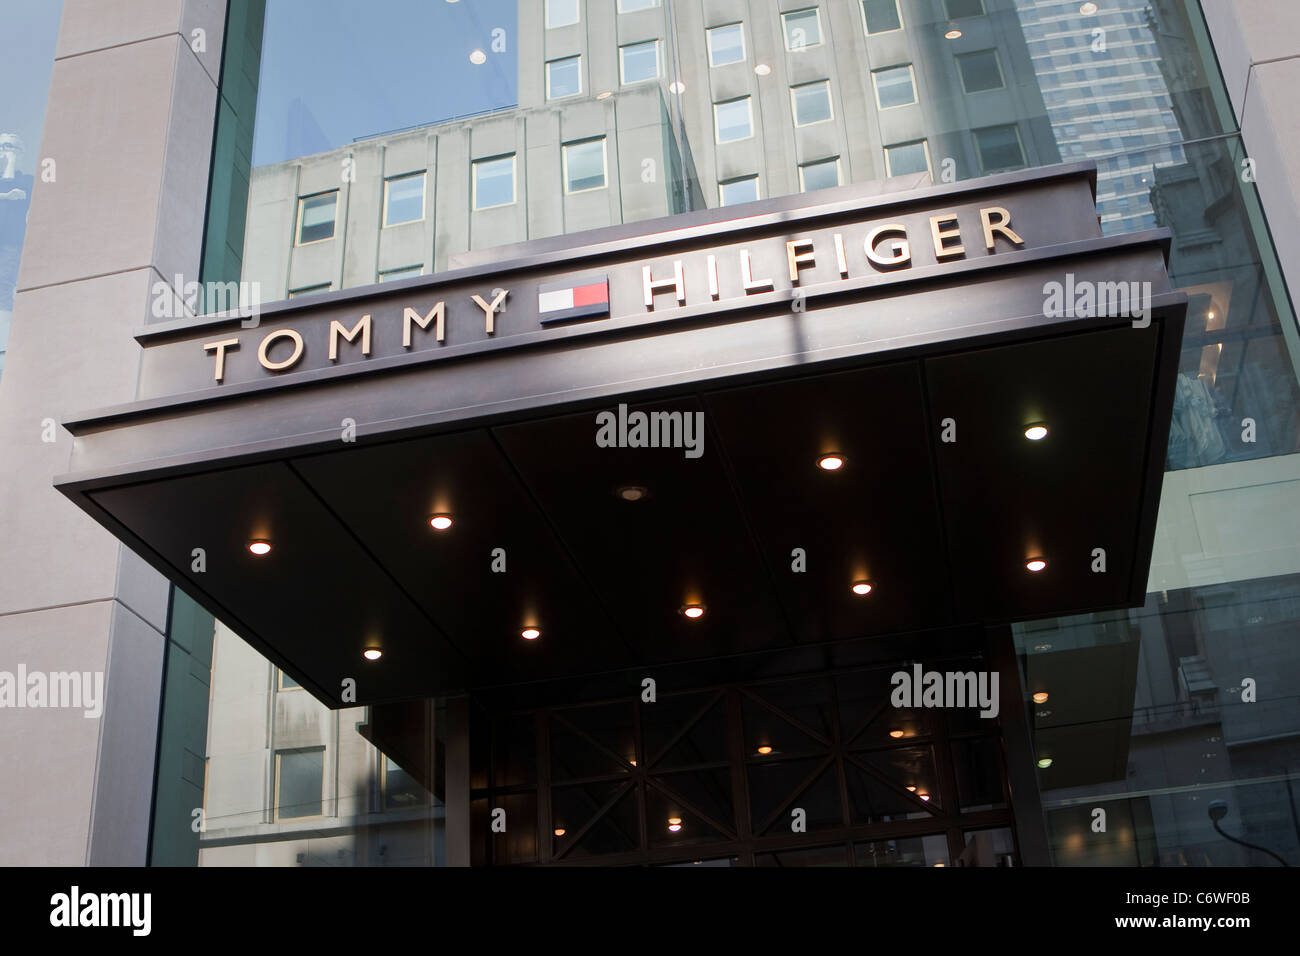 d8a59b253ac2 Fifth Avenue Tommy Hilfiger store is pictured in the New York City borough  of Manhattan